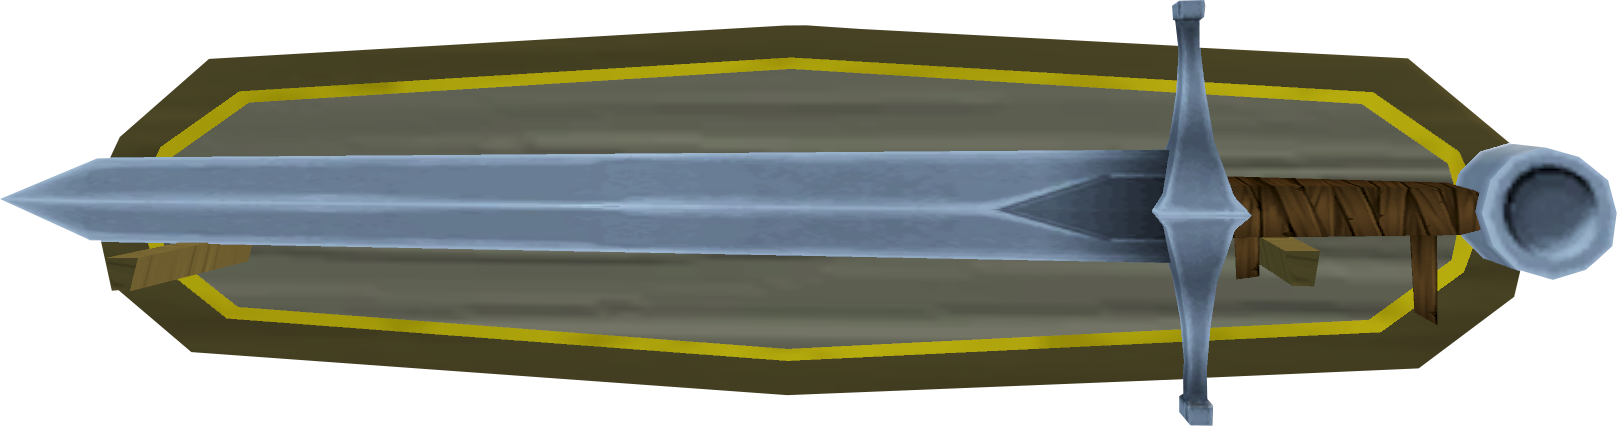 File:Excalibur mounted.png